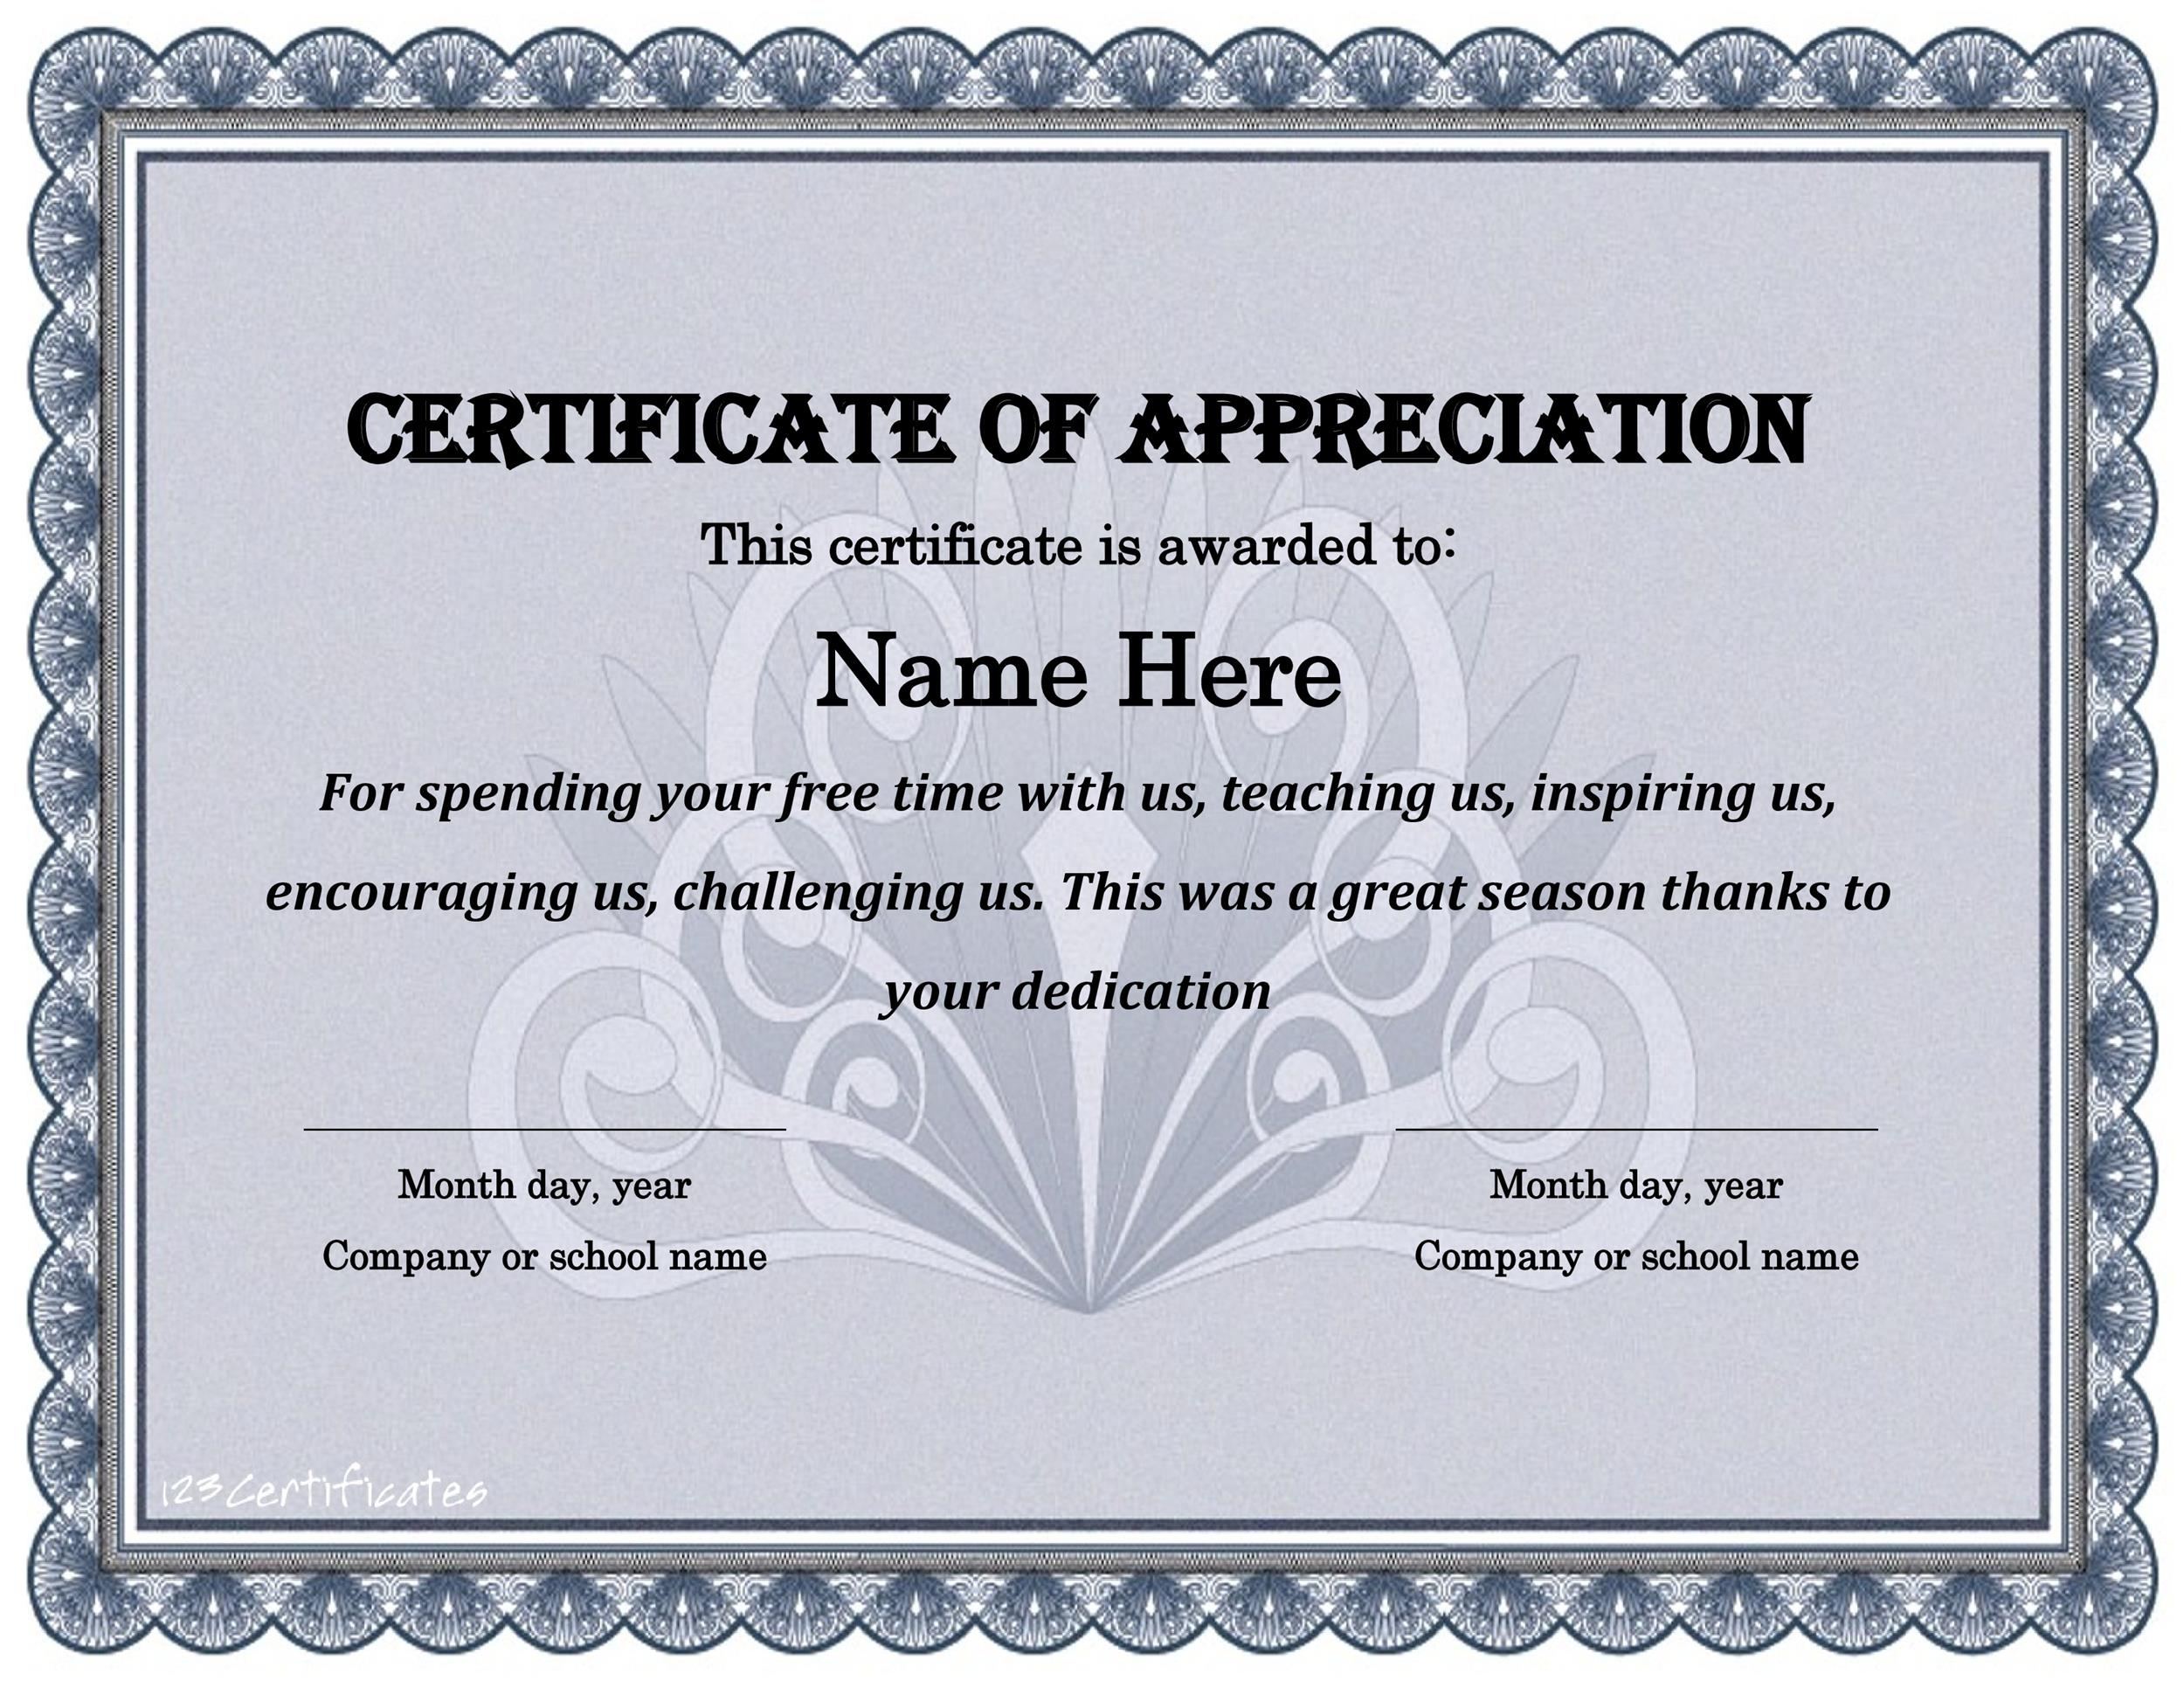 Printable Certificate Of Appreciation 21  Free Blank Printable Certificates